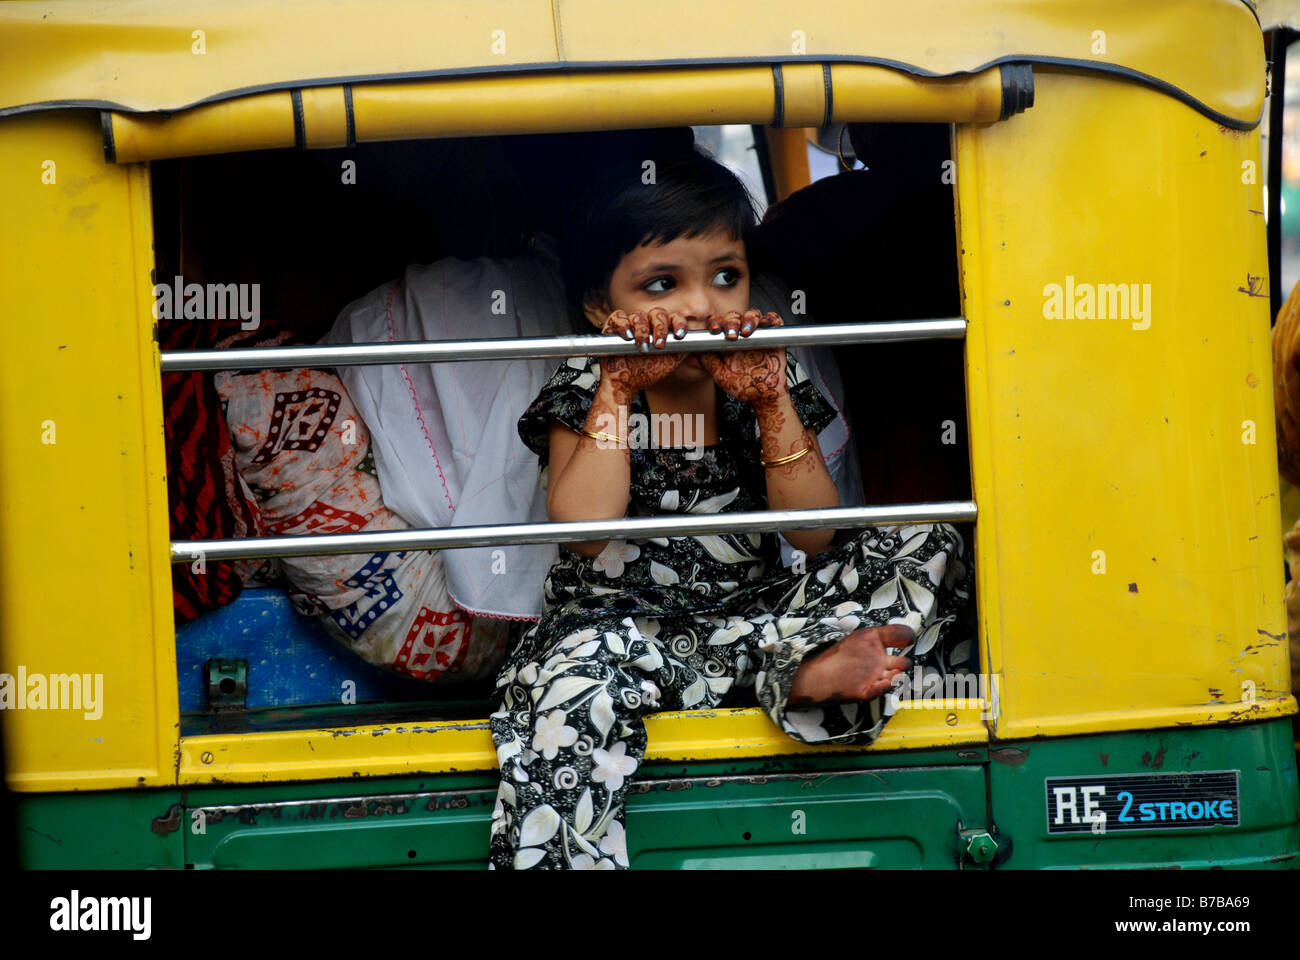 Girl with henna patterns on her hands leaning out of auto-rickshaw, Ahmedabad, India. - Stock Image